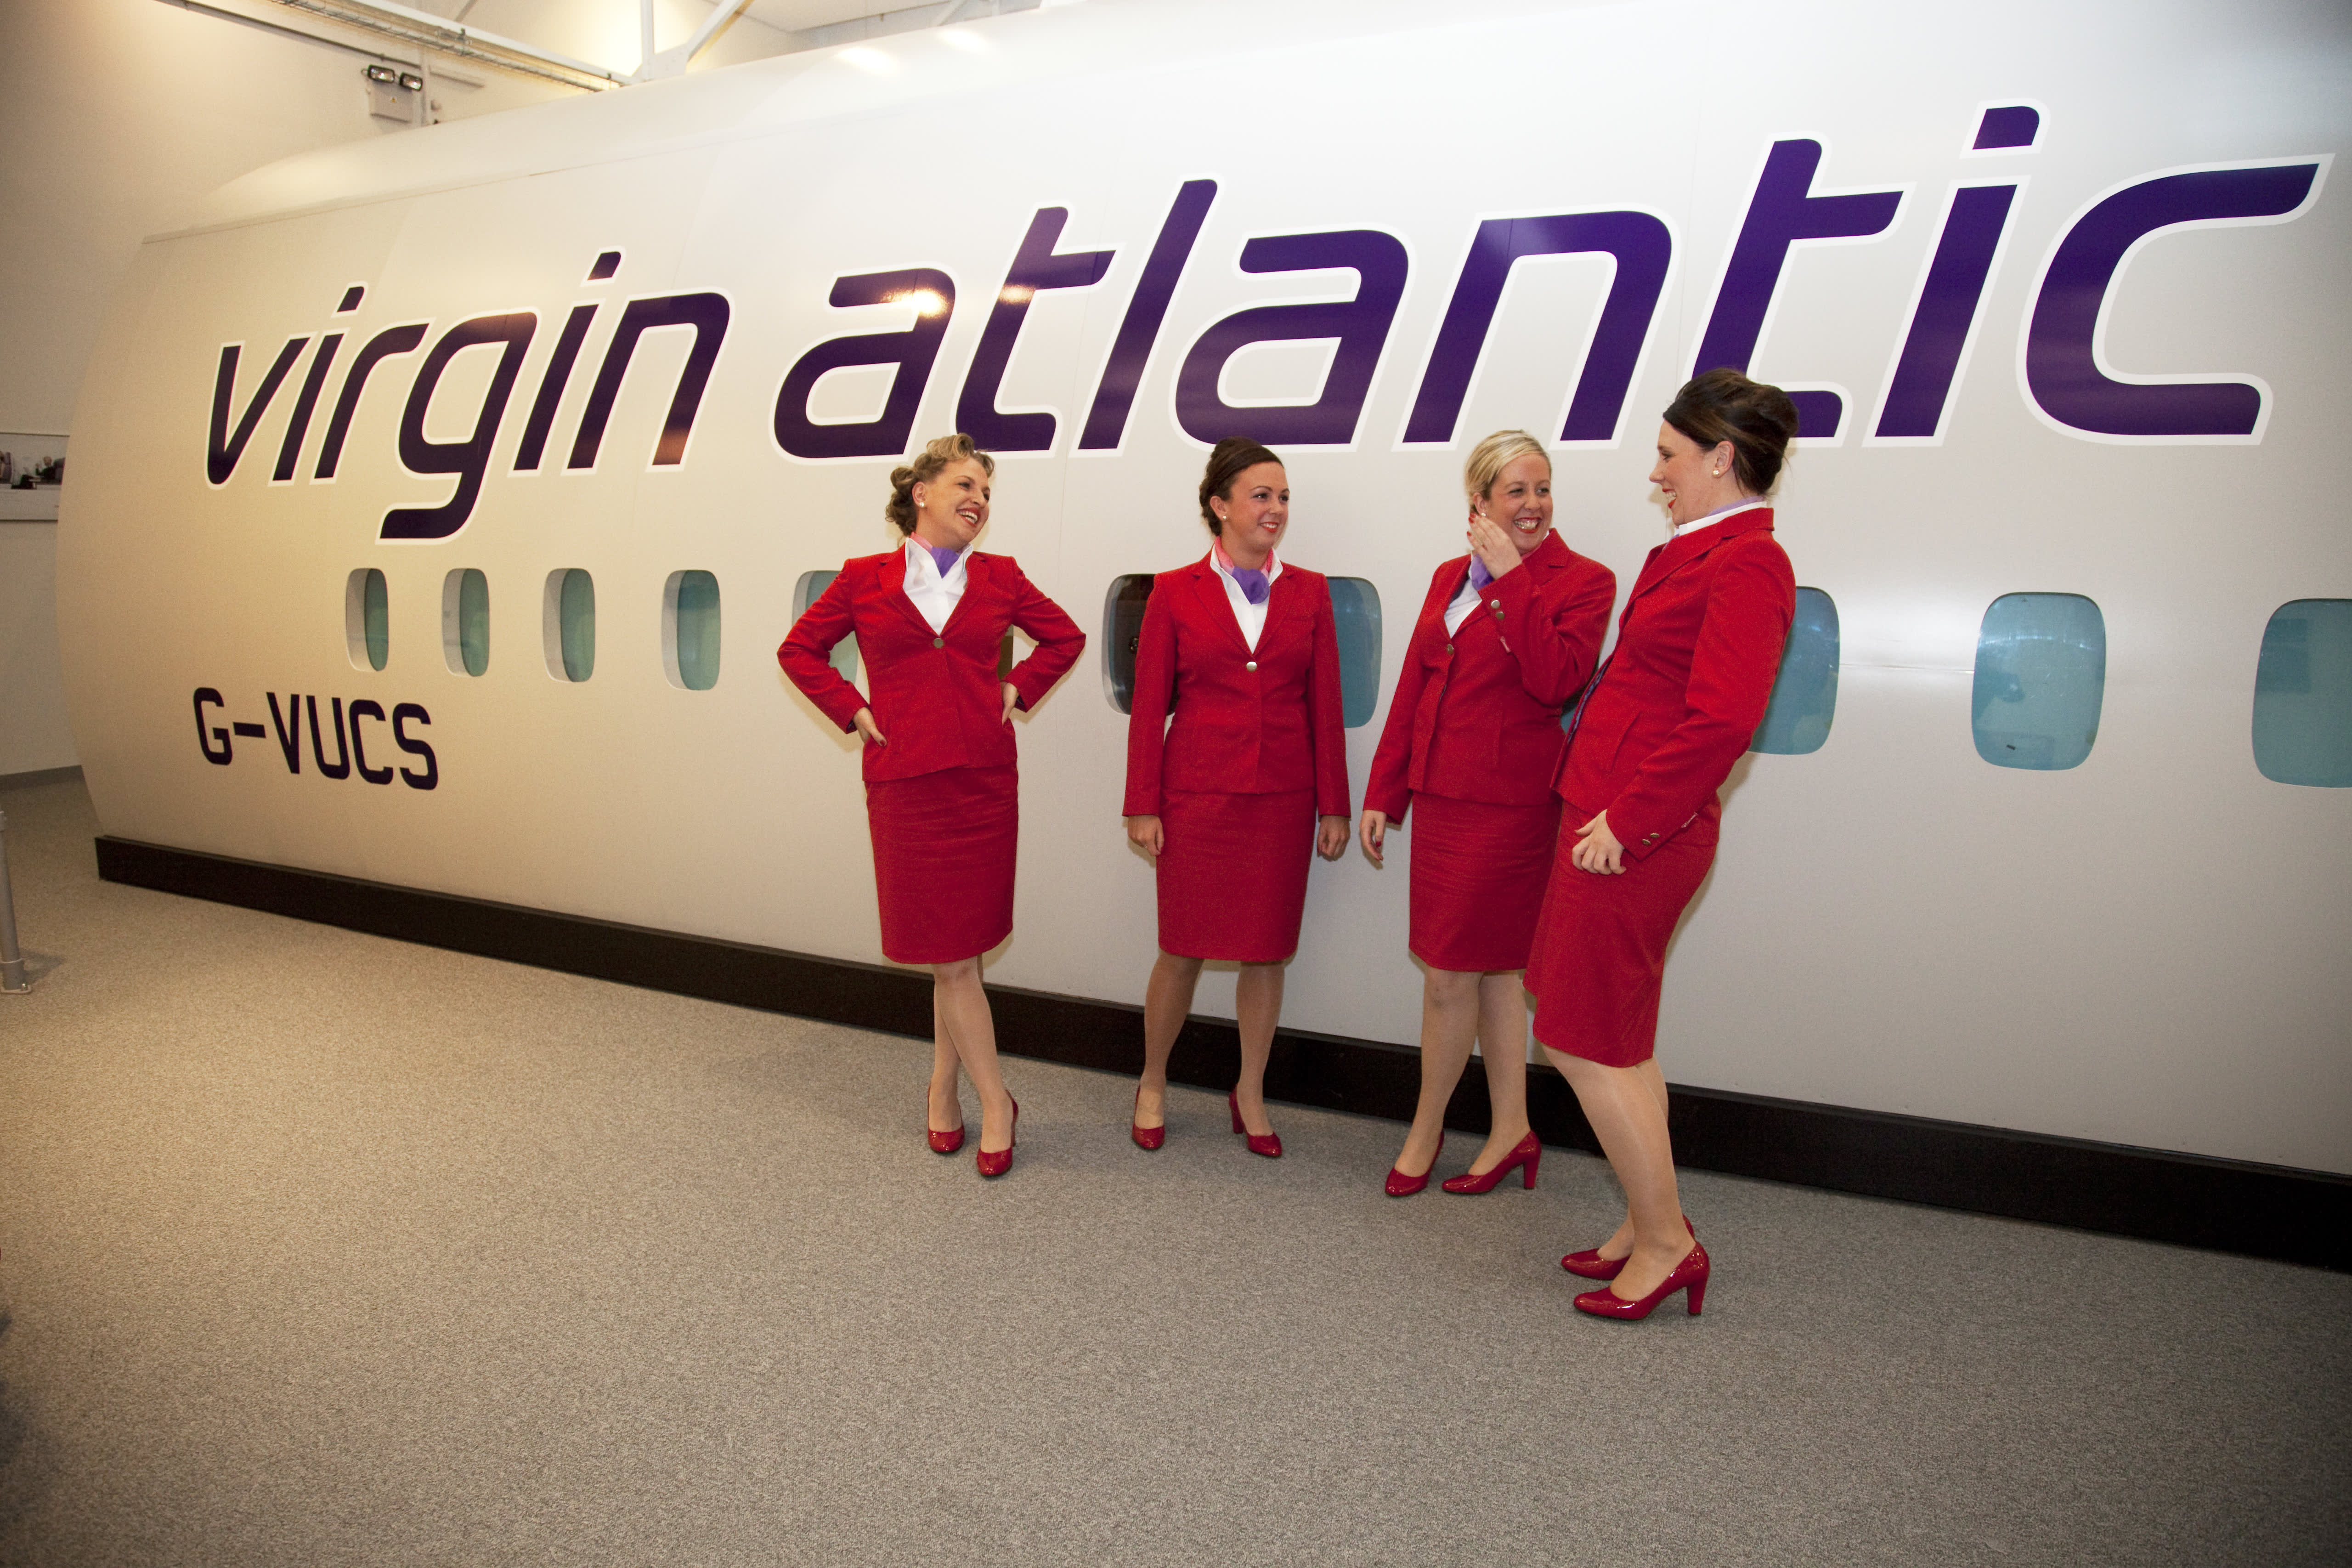 Virgin Atlantic to cut more than 3,000 jobs as coronavirus hits